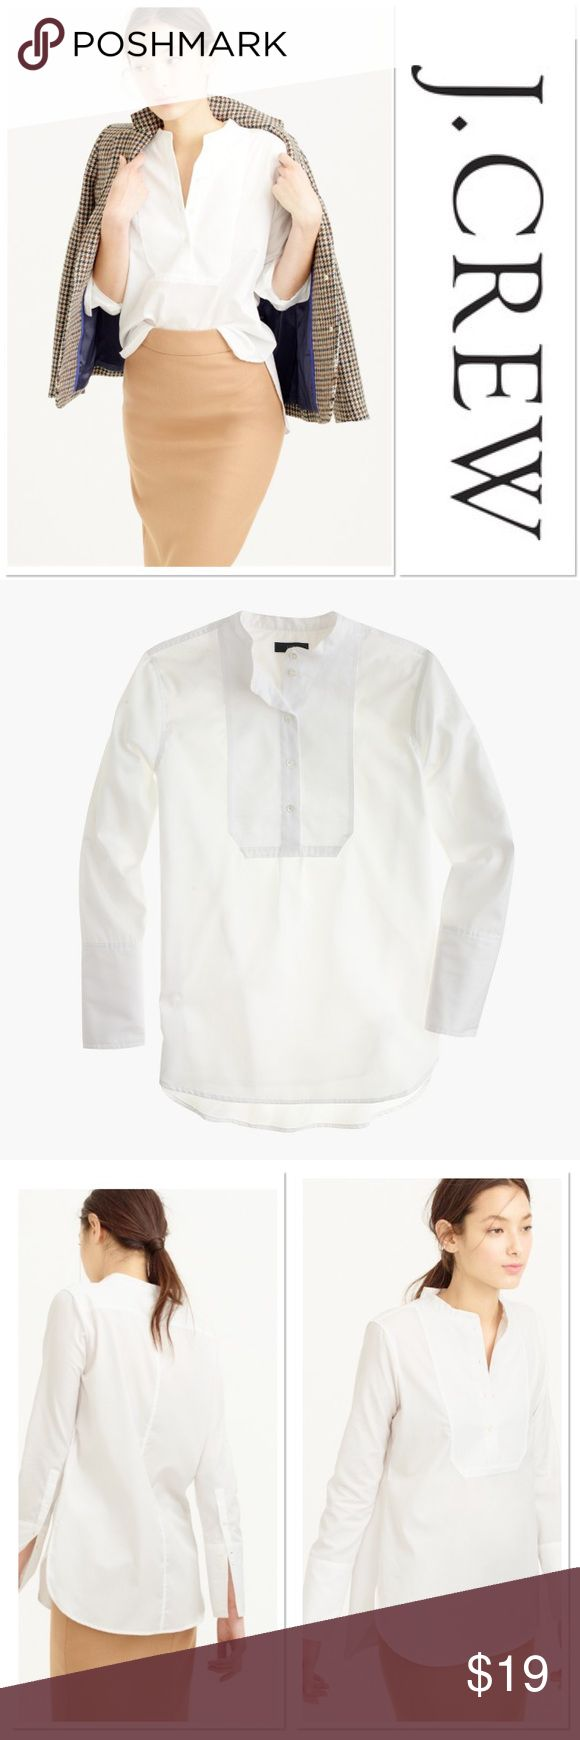 "[J Crew] Petite Pique Bib Shirt White Cotton Tunic What to wear when the day calls for something a bit more refined than a T-shirt? A tux-inspired top in cotton saT-shirtn with a textured bib that easily dresses up or down. Cotton. Long roll-up sleeves. Button placket. Across chest about 16 1/2"". Shirt length about 27"". There is a very small spot underarm where the shirt was unstitched but it has been professionally amended. Not visible because it is underarm of course . Otherwise excellent…"